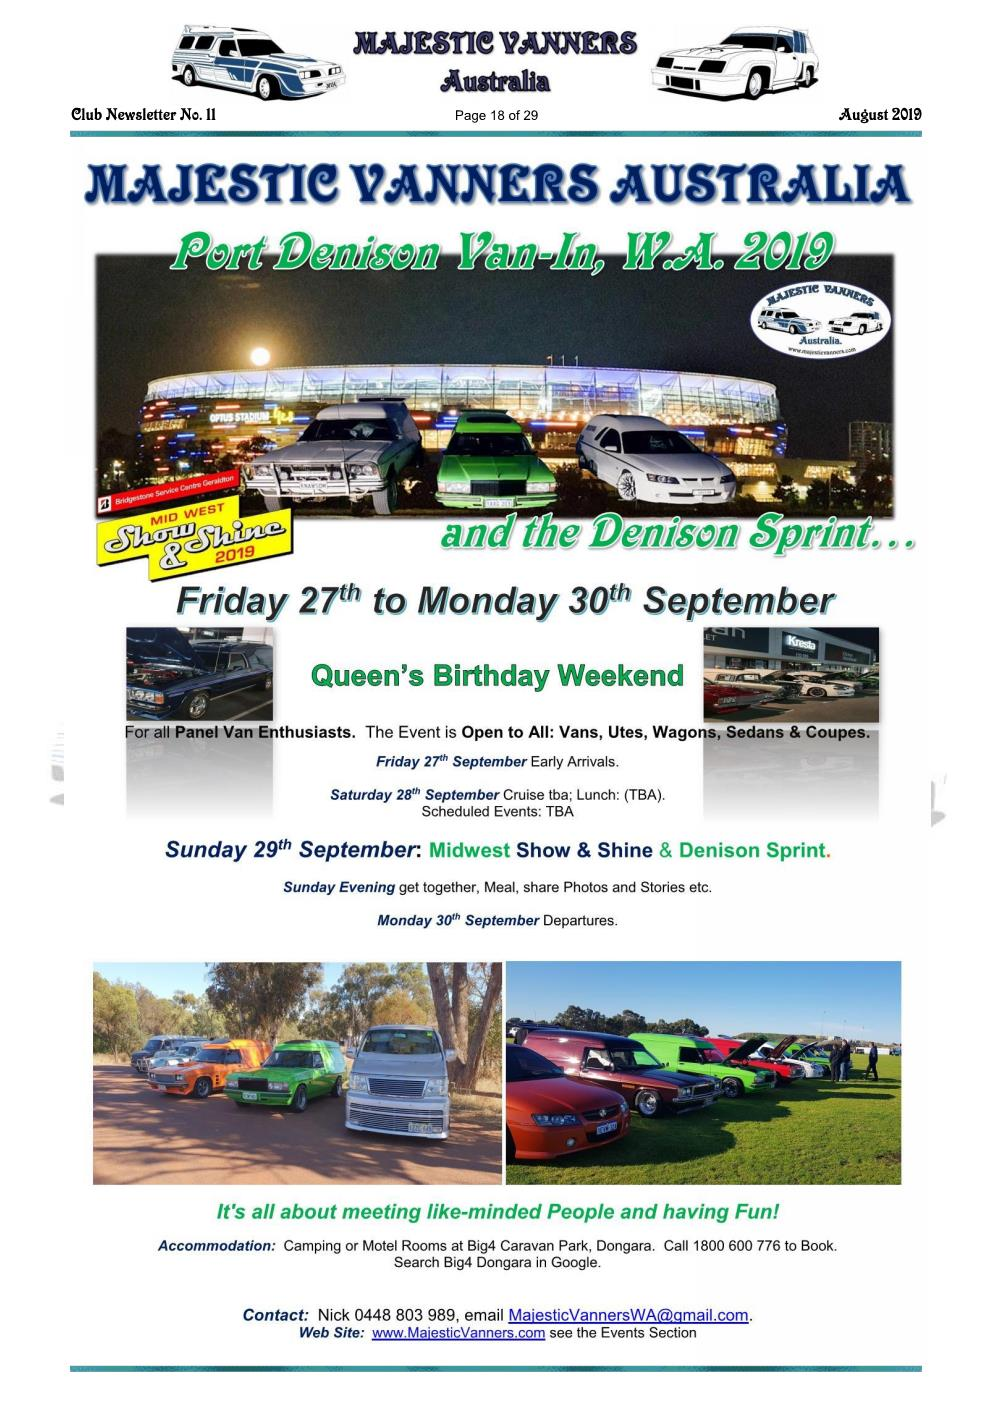 MAJESTIC VANNERS Newsletter Issue No: 11 August 2019 Mv_new56